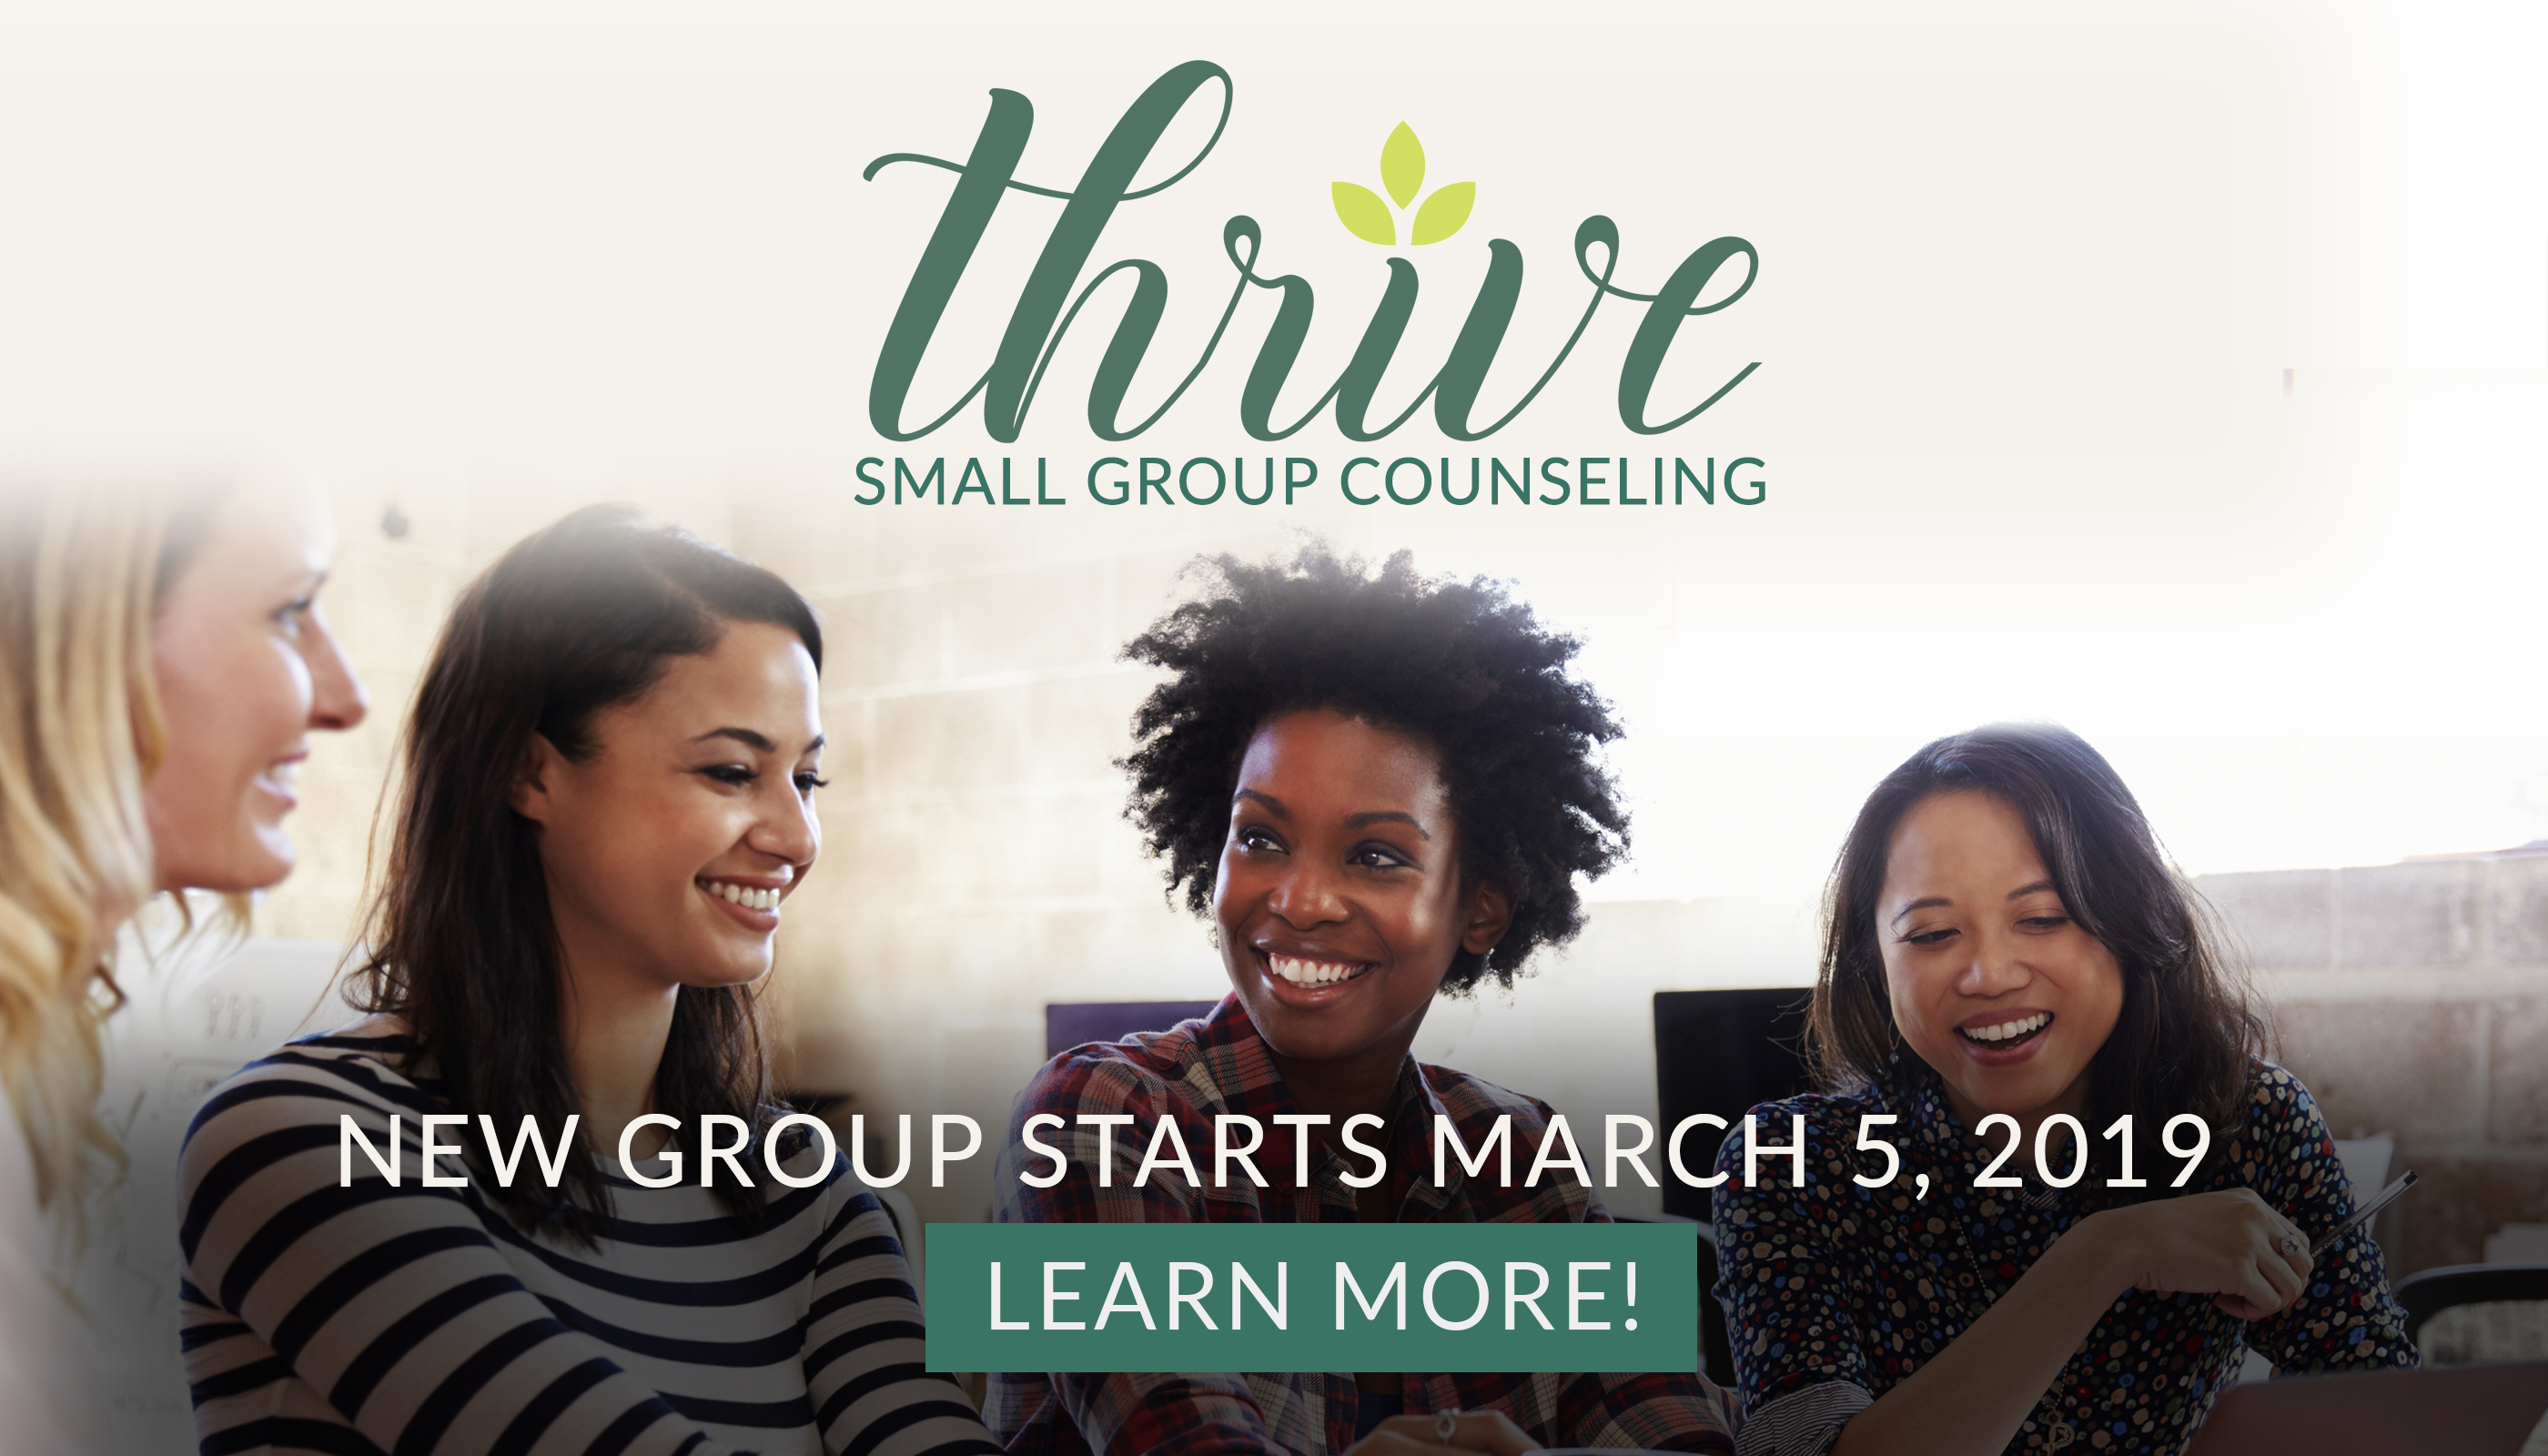 https://marriagerecoverycenter.com/wp-content/uploads/2018/12/Thrive-Group-Counseling-with-dates-March-2019.jpg